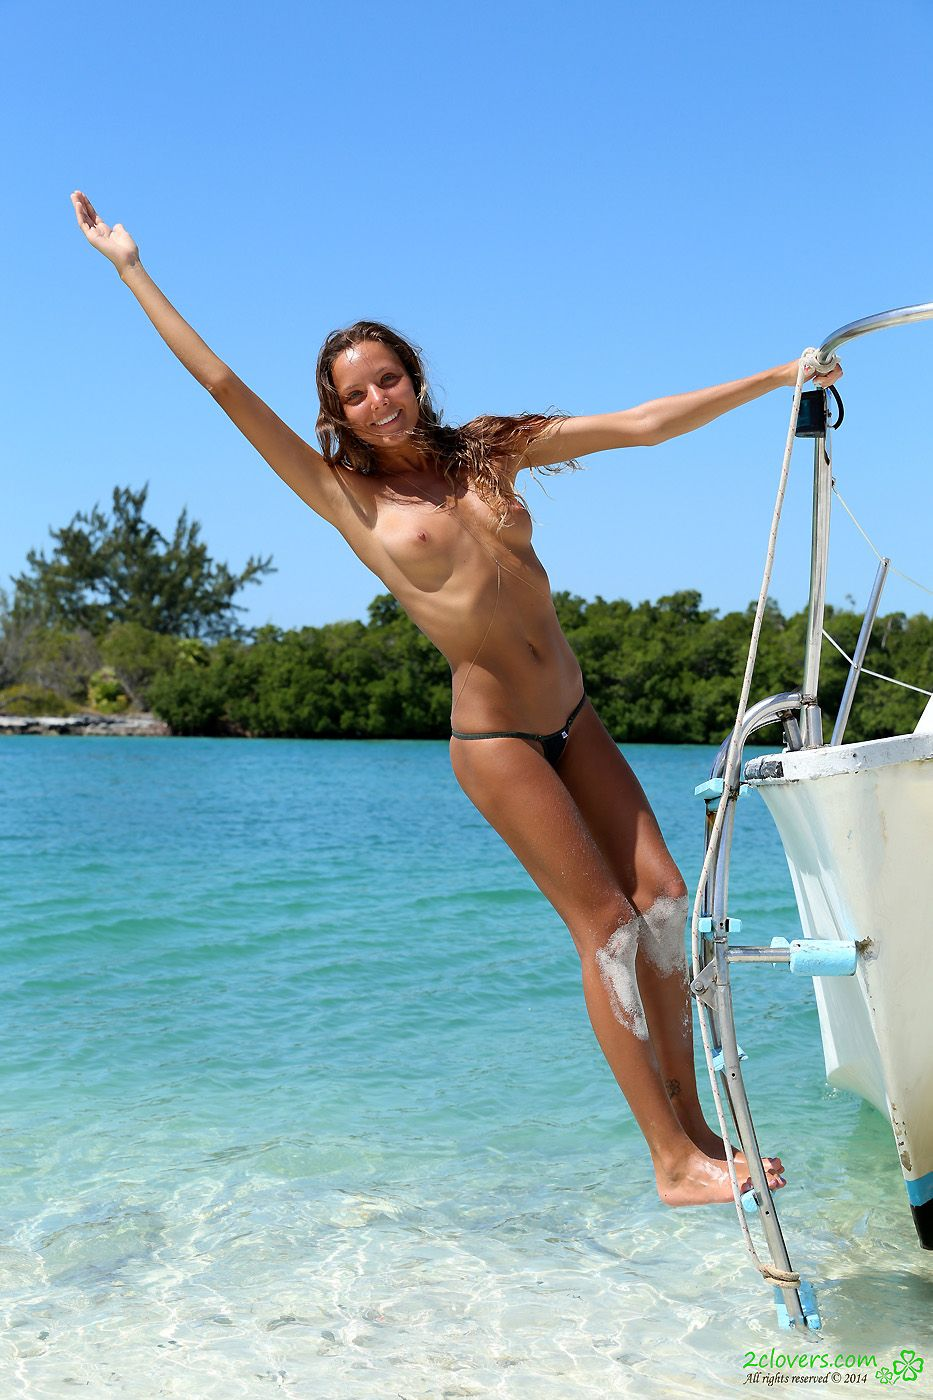 Nude In Boat  Tumblr  Ladies On Board  Pinterest -1084